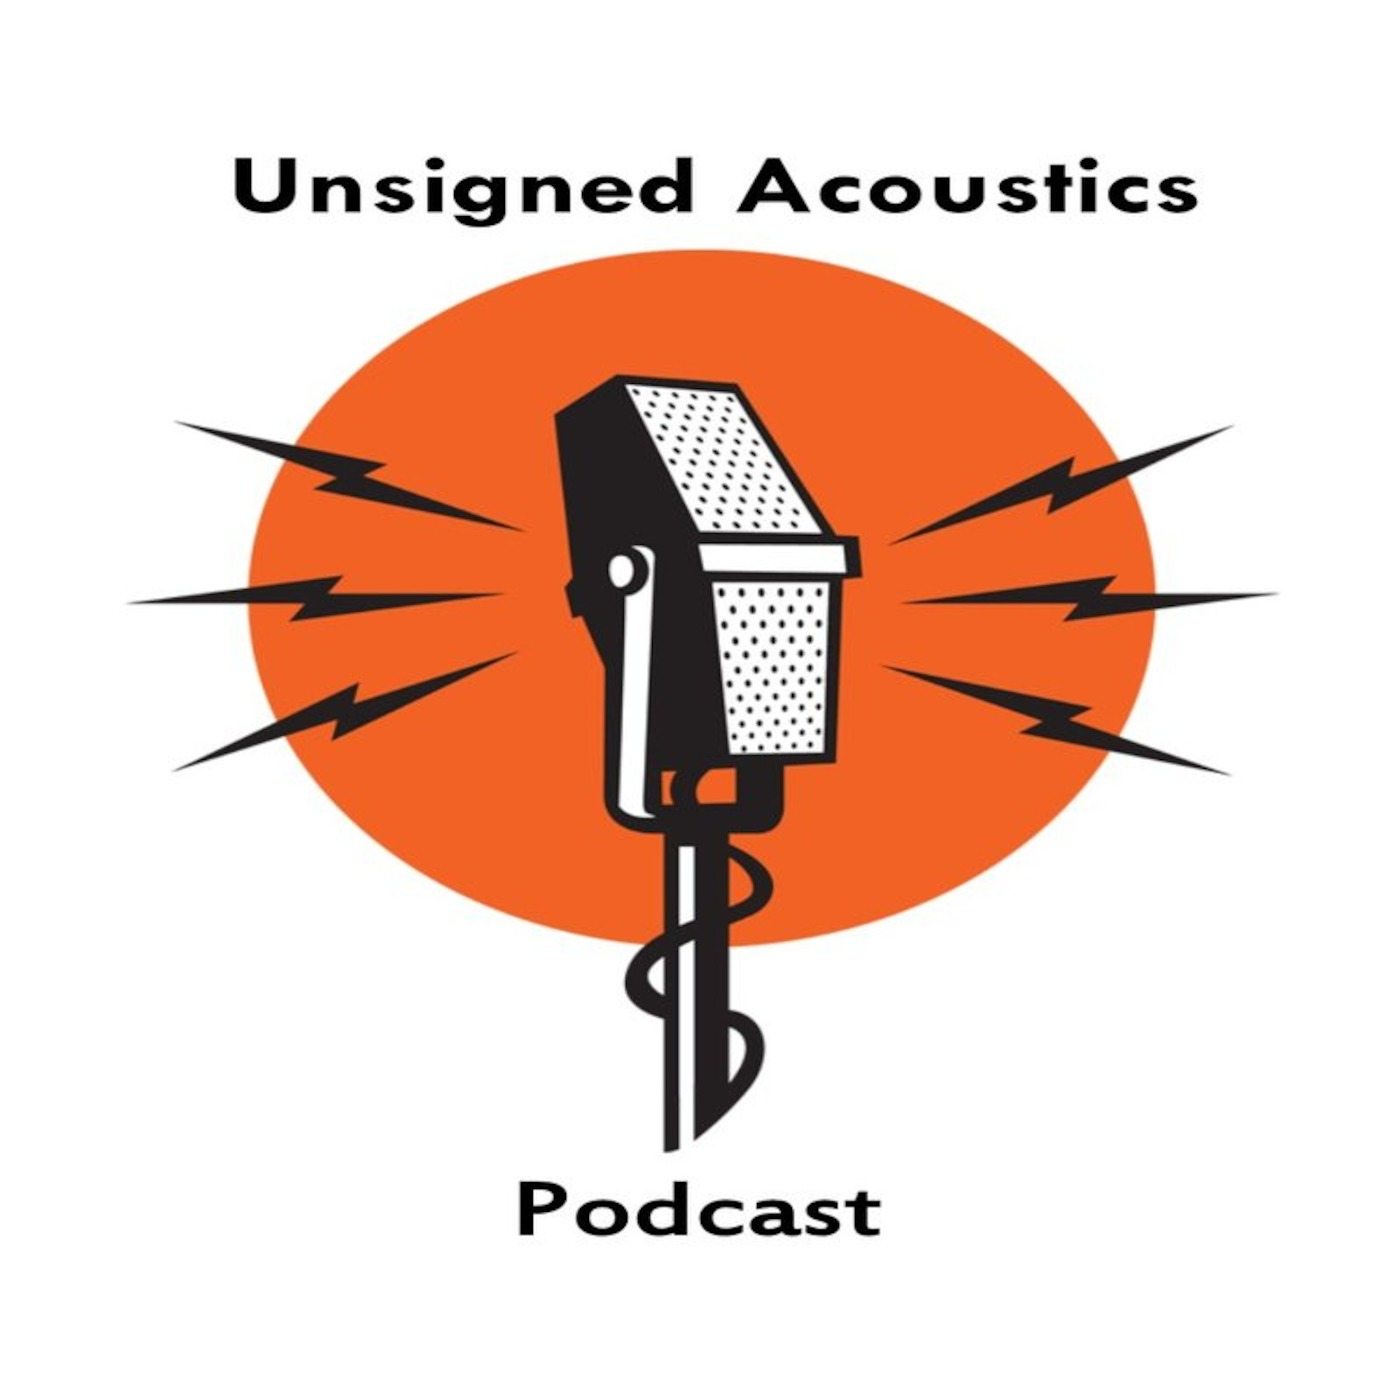 Unsigned Acoustics